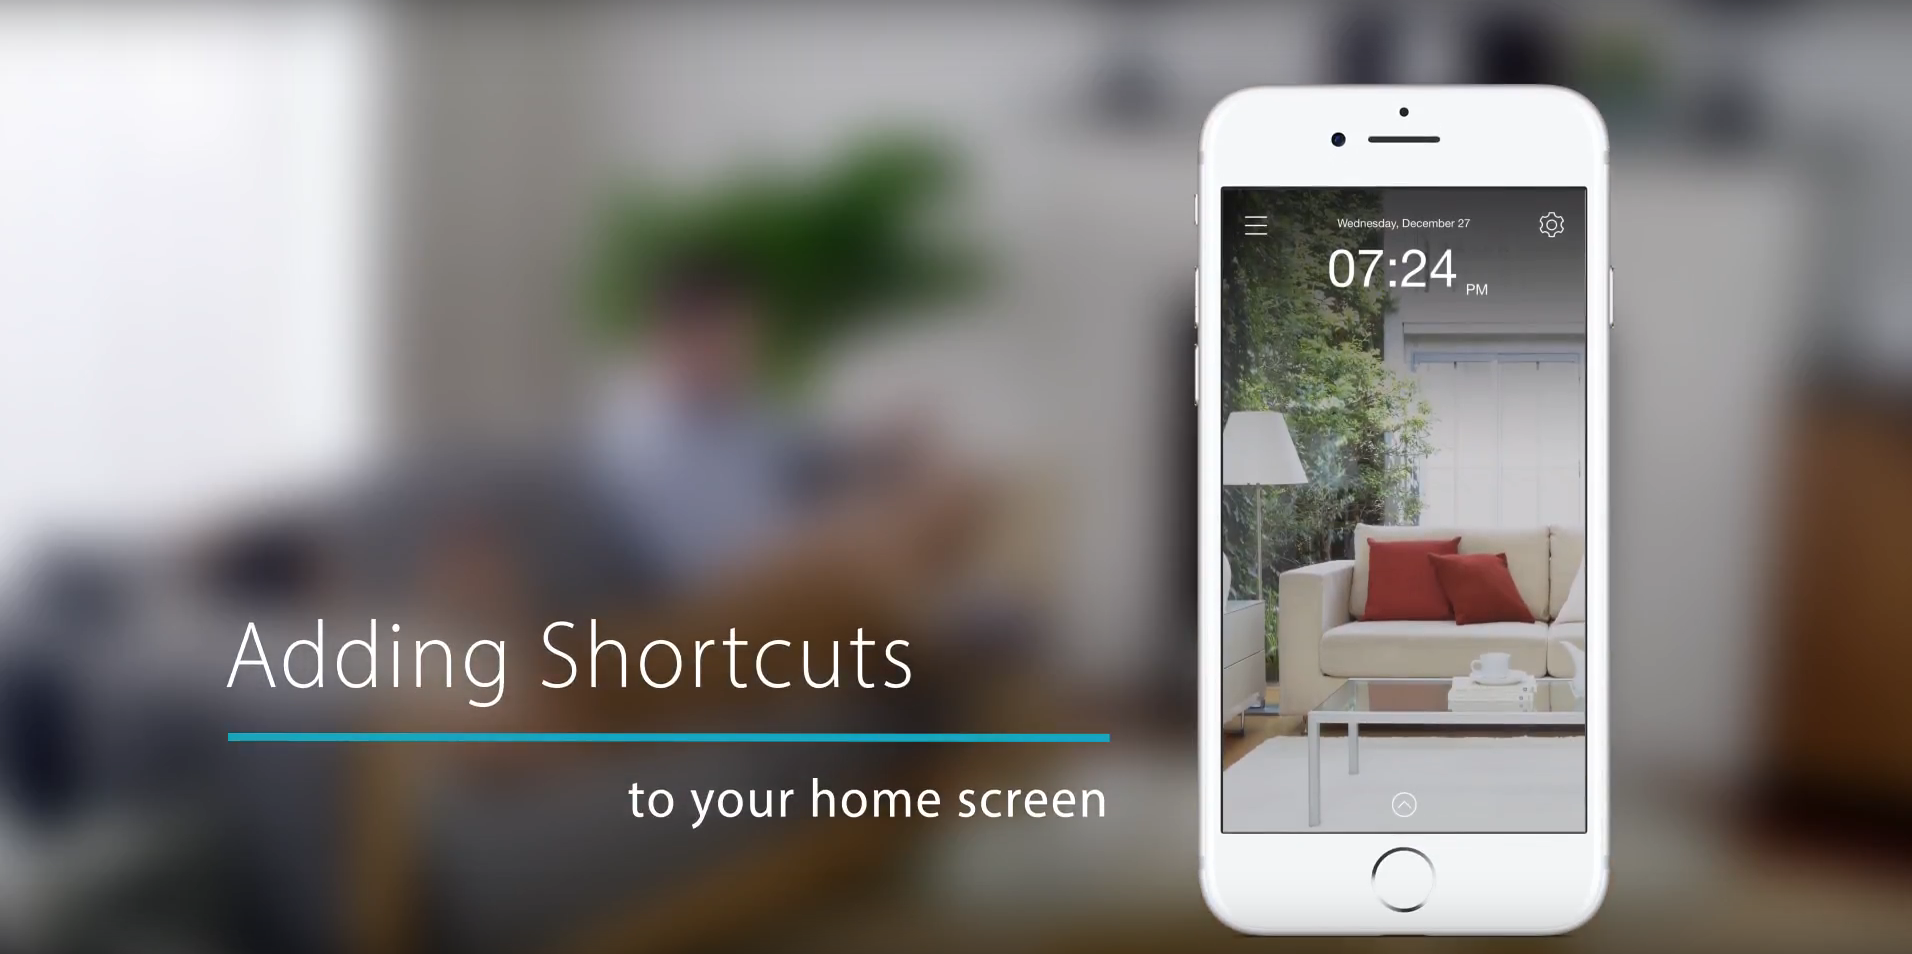 mydlink video setup tutorial - Adding Shortcuts to your home screen